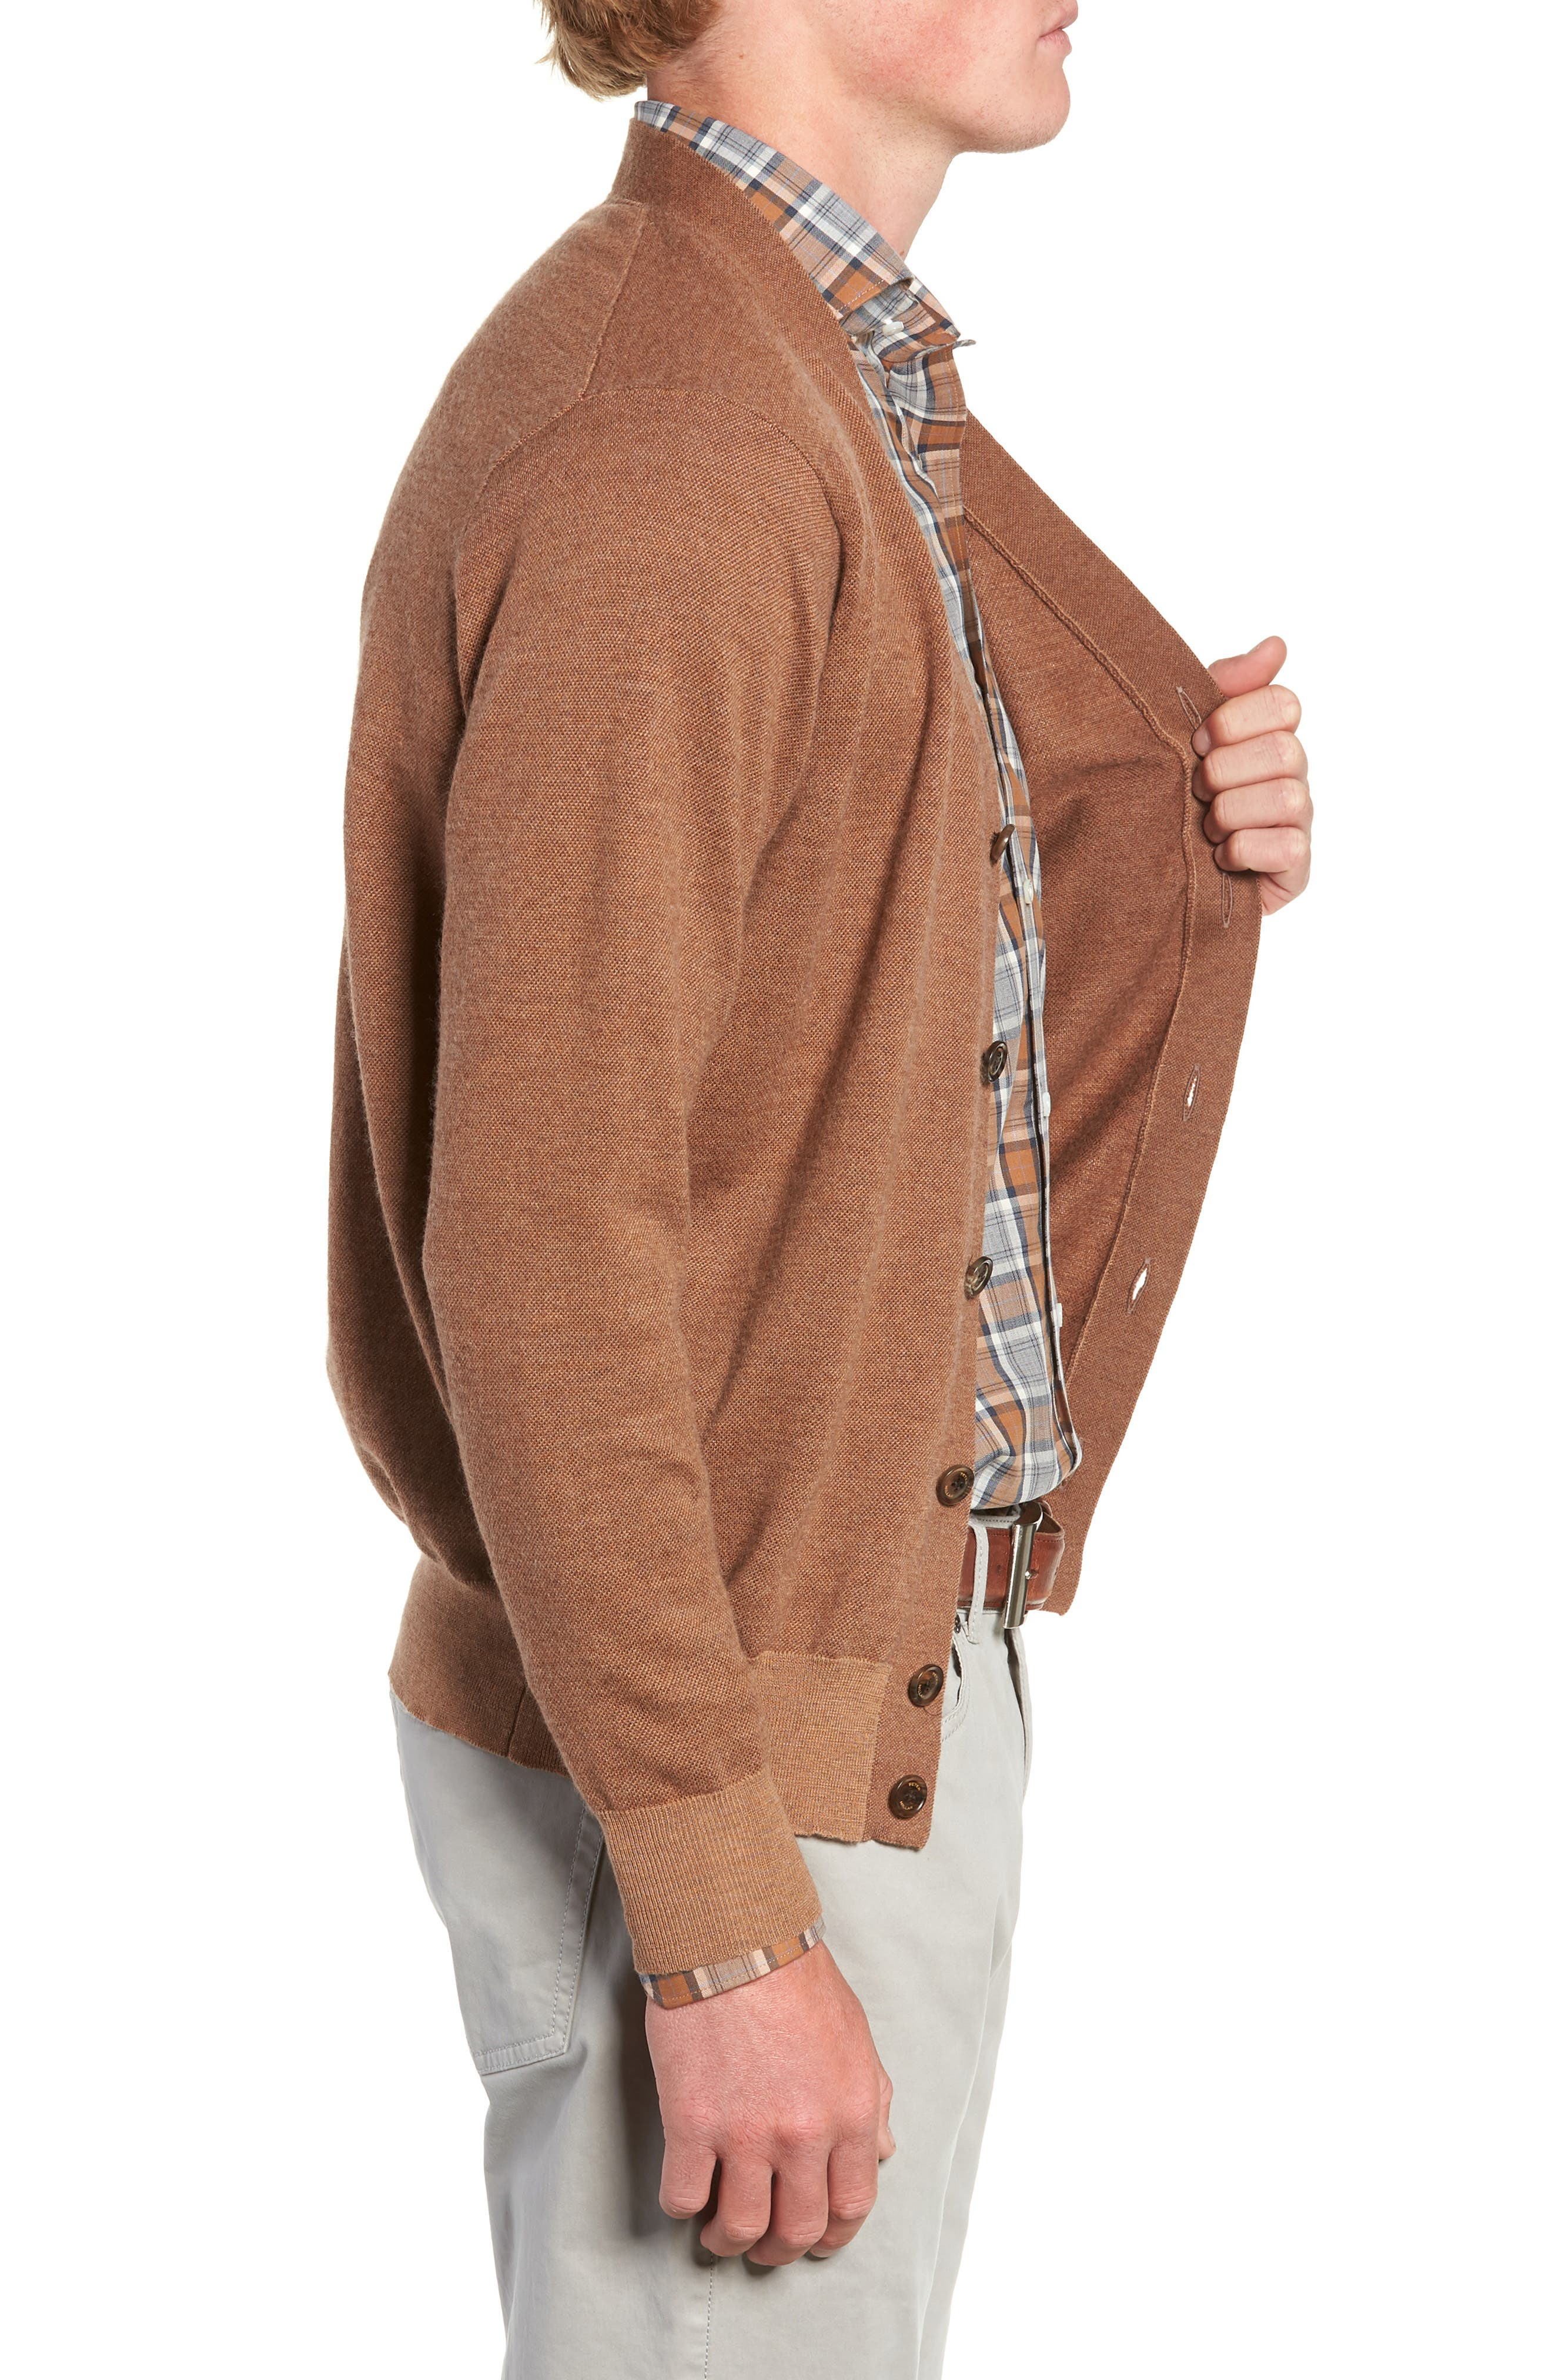 English Manor Cardigan,                             Alternate thumbnail 3, color,                             VICUNA